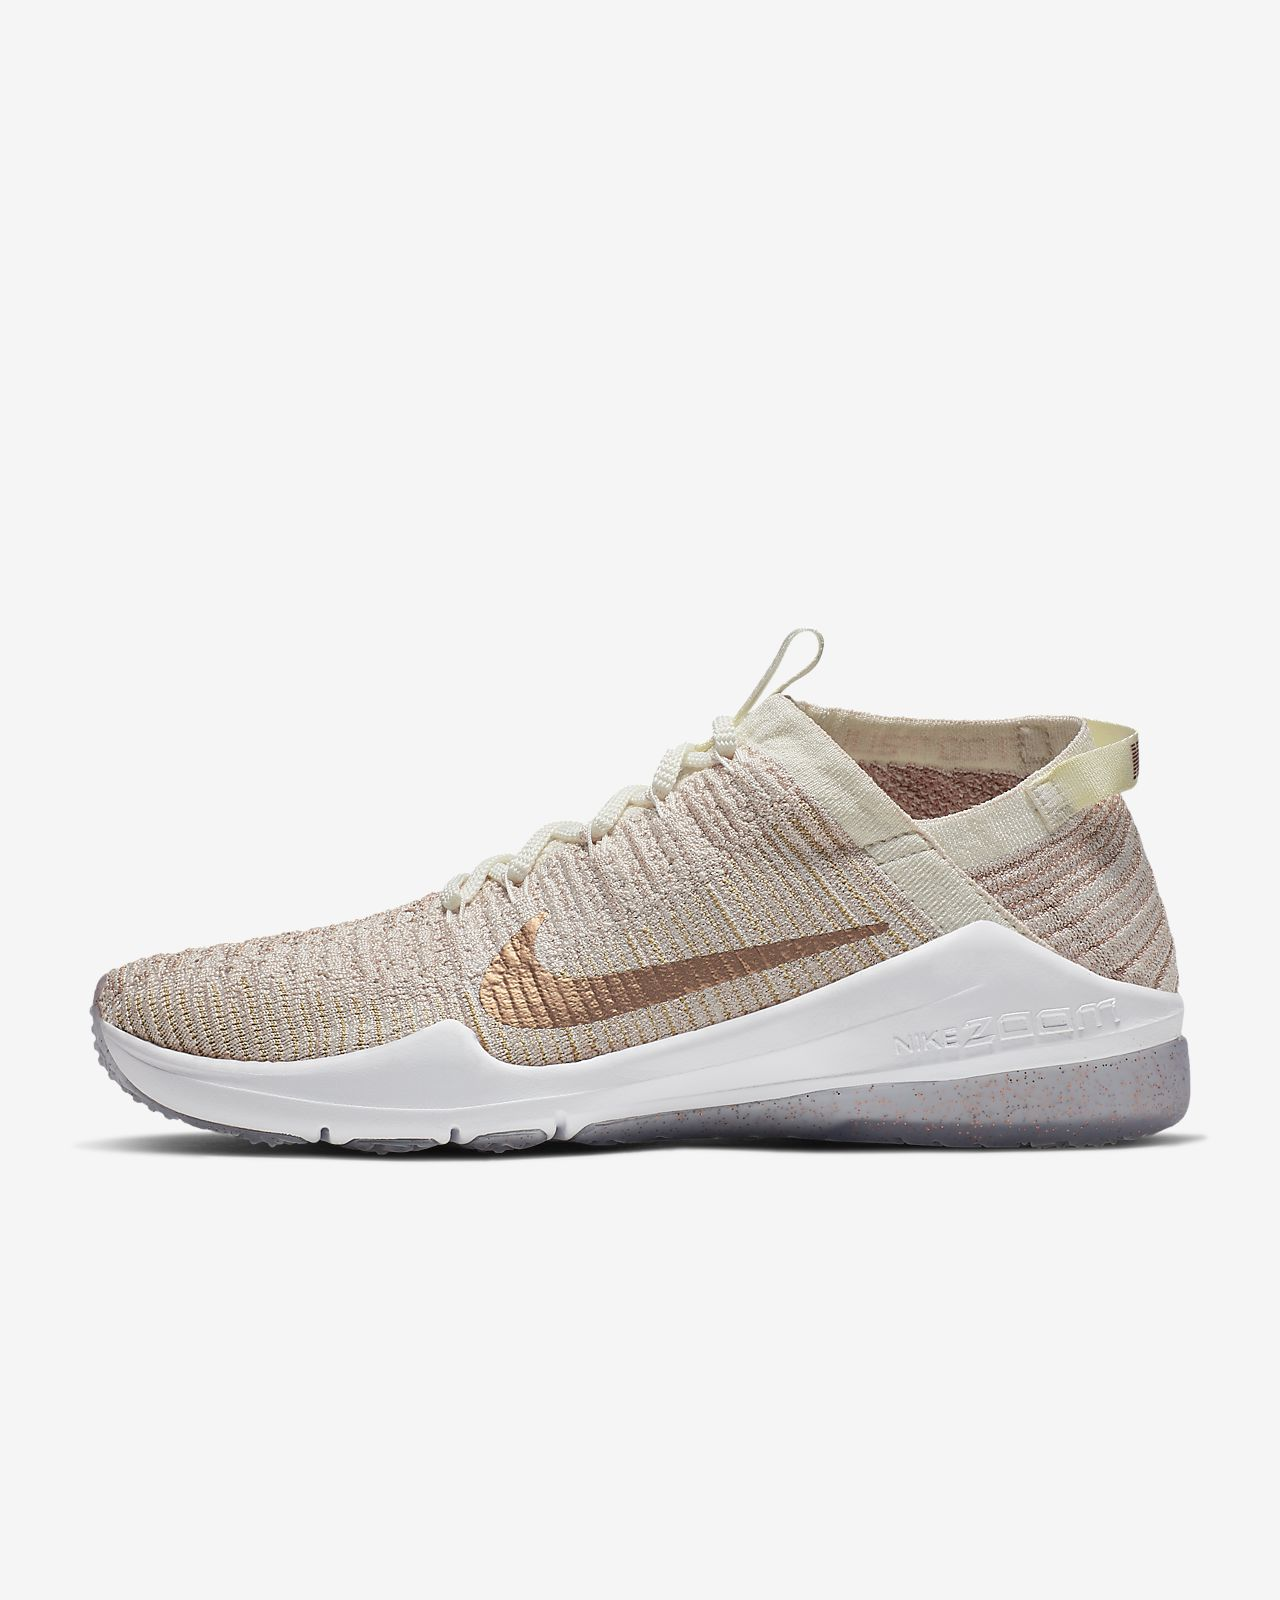 352d13dcd43 Nike Air Zoom Fearless Flyknit 2 Metallic Women s Training Shoe ...